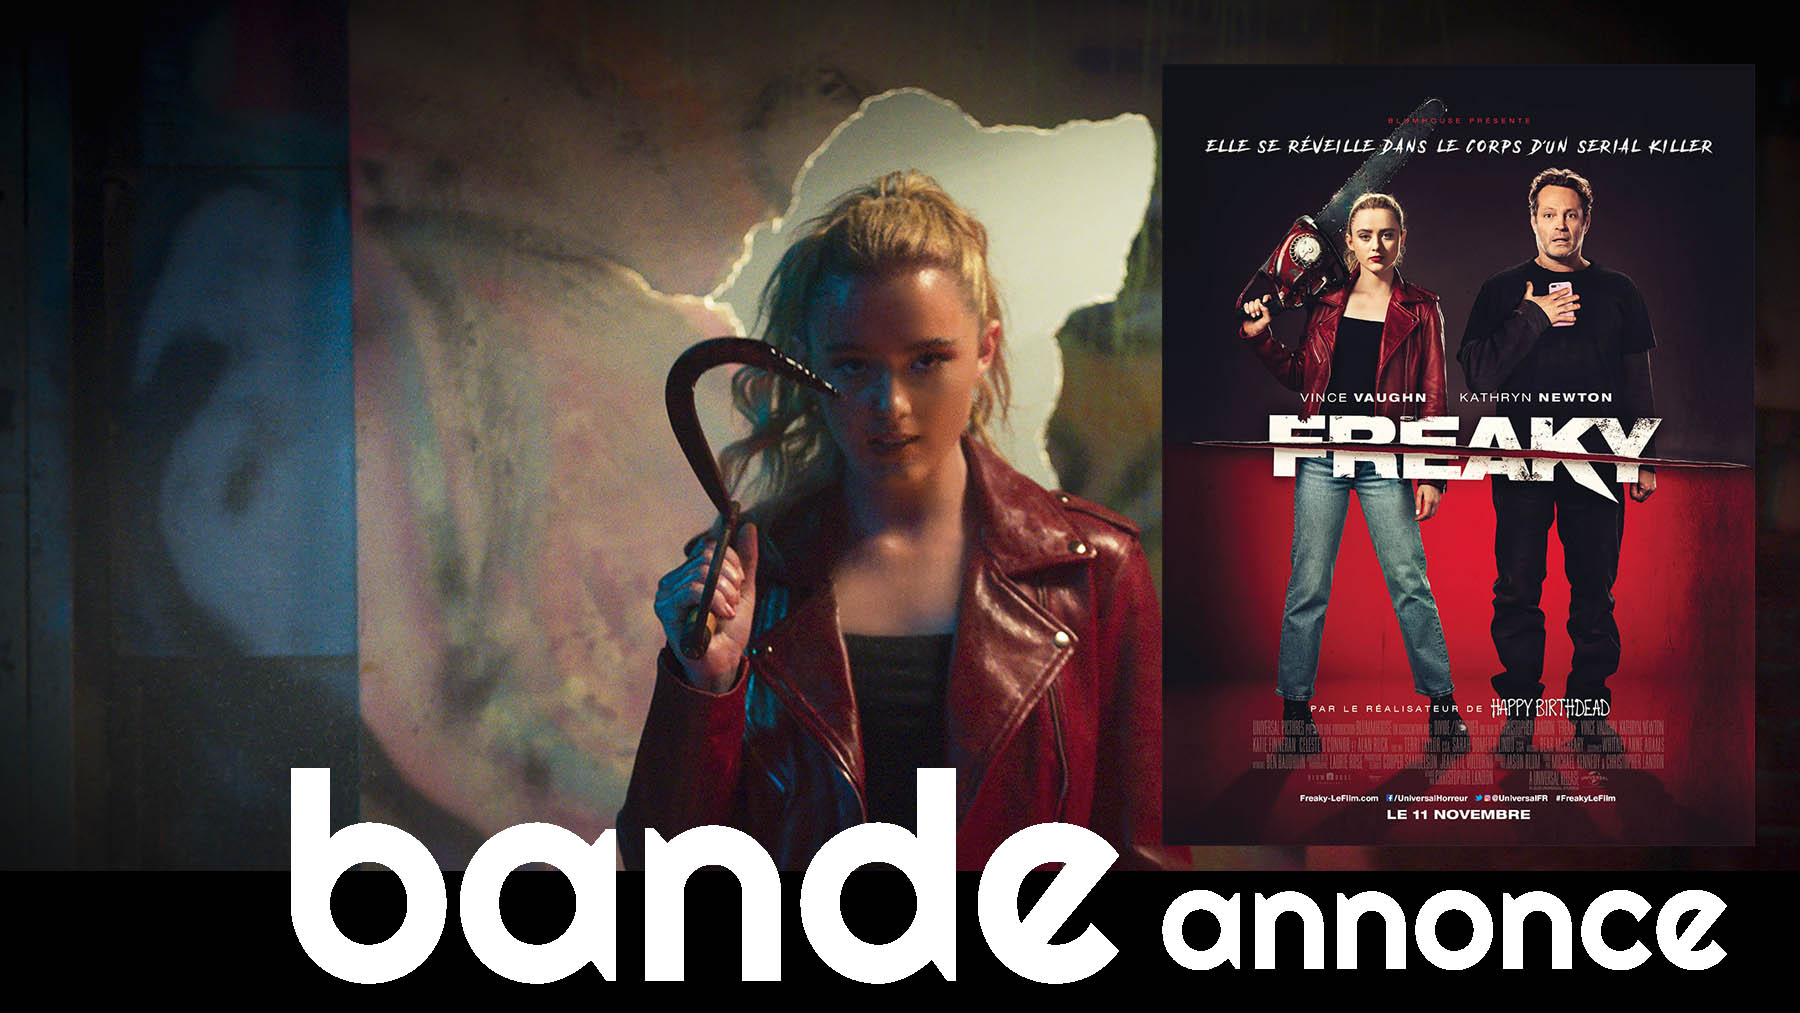 Freaky, bande-annonce